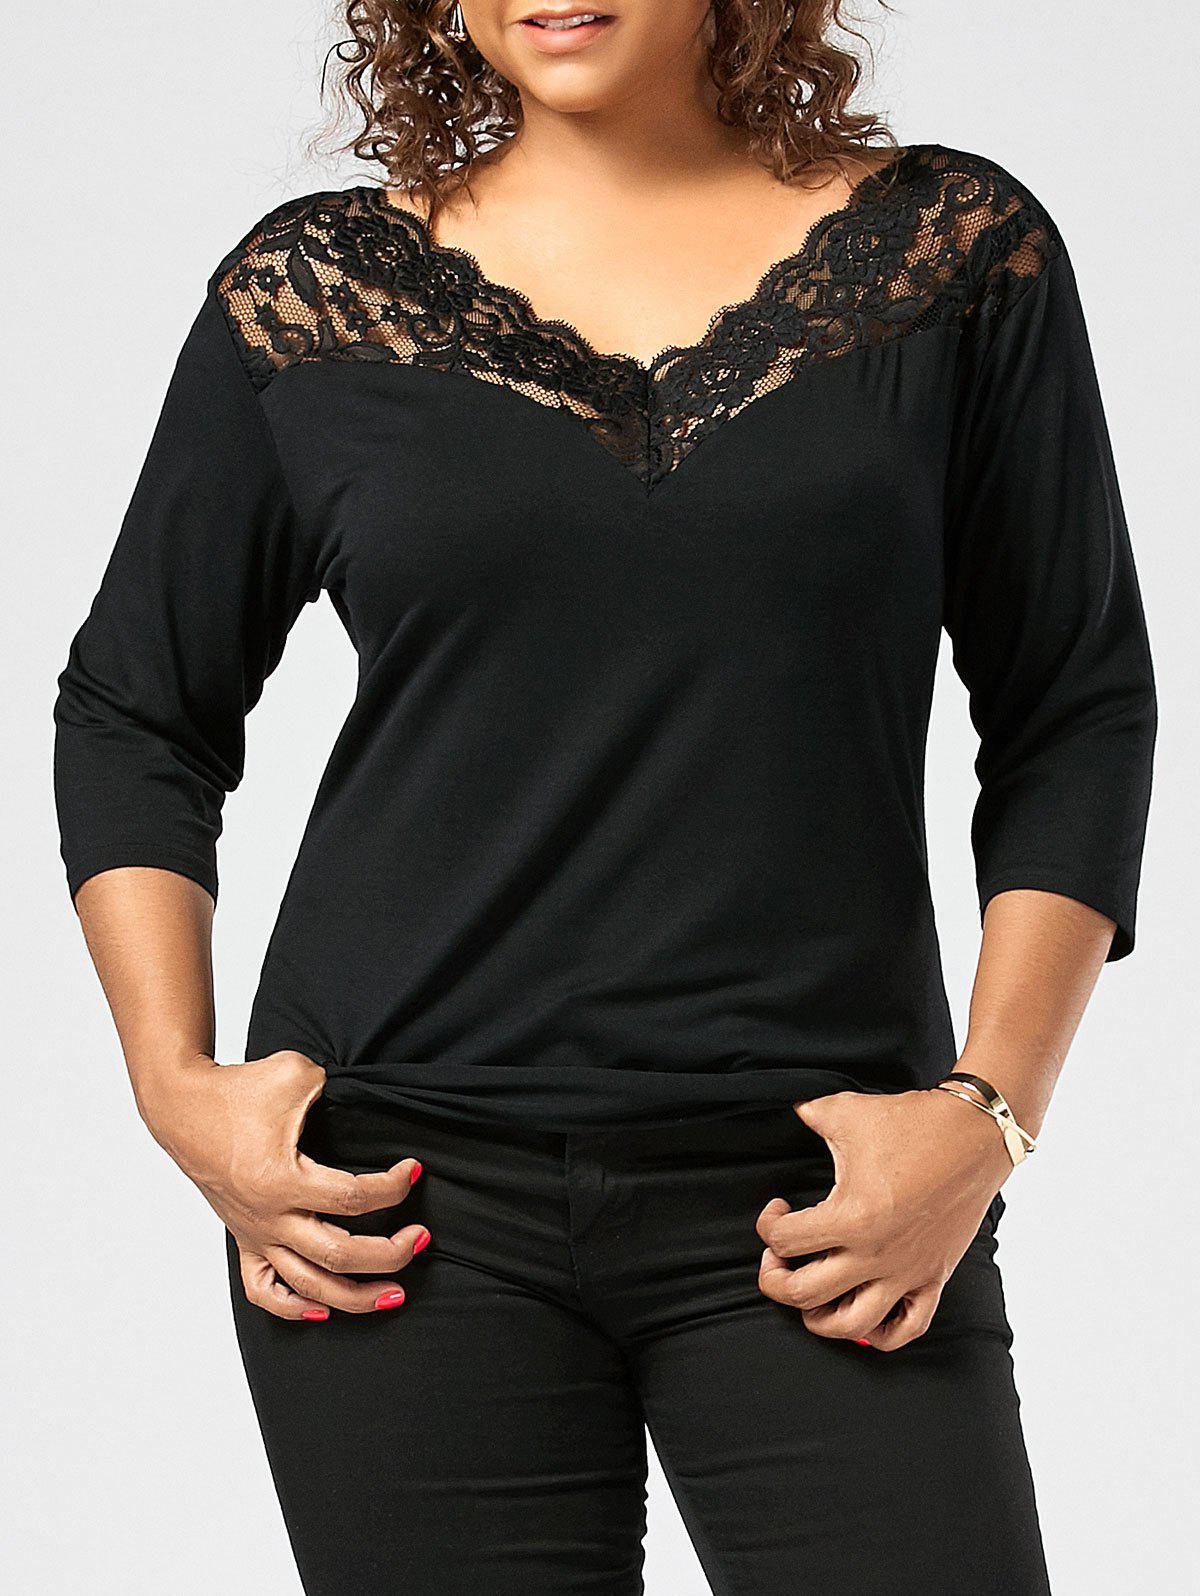 Lace Sheer Trim Plus Size T-shirt sheer lace panel plus size leggings